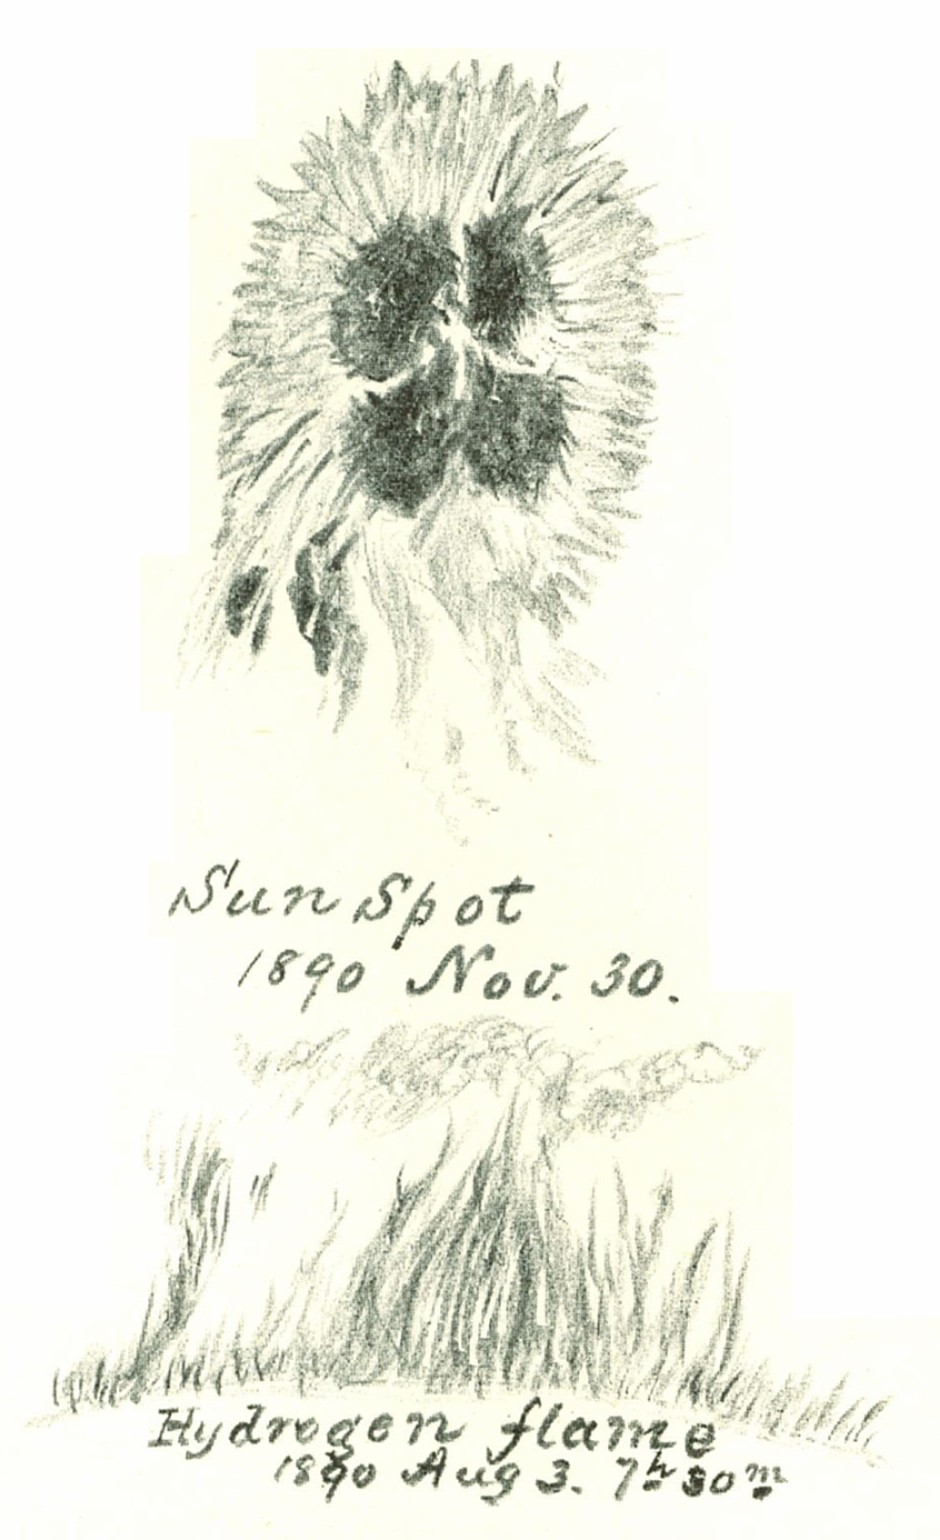 Sunspot Sketch 1890